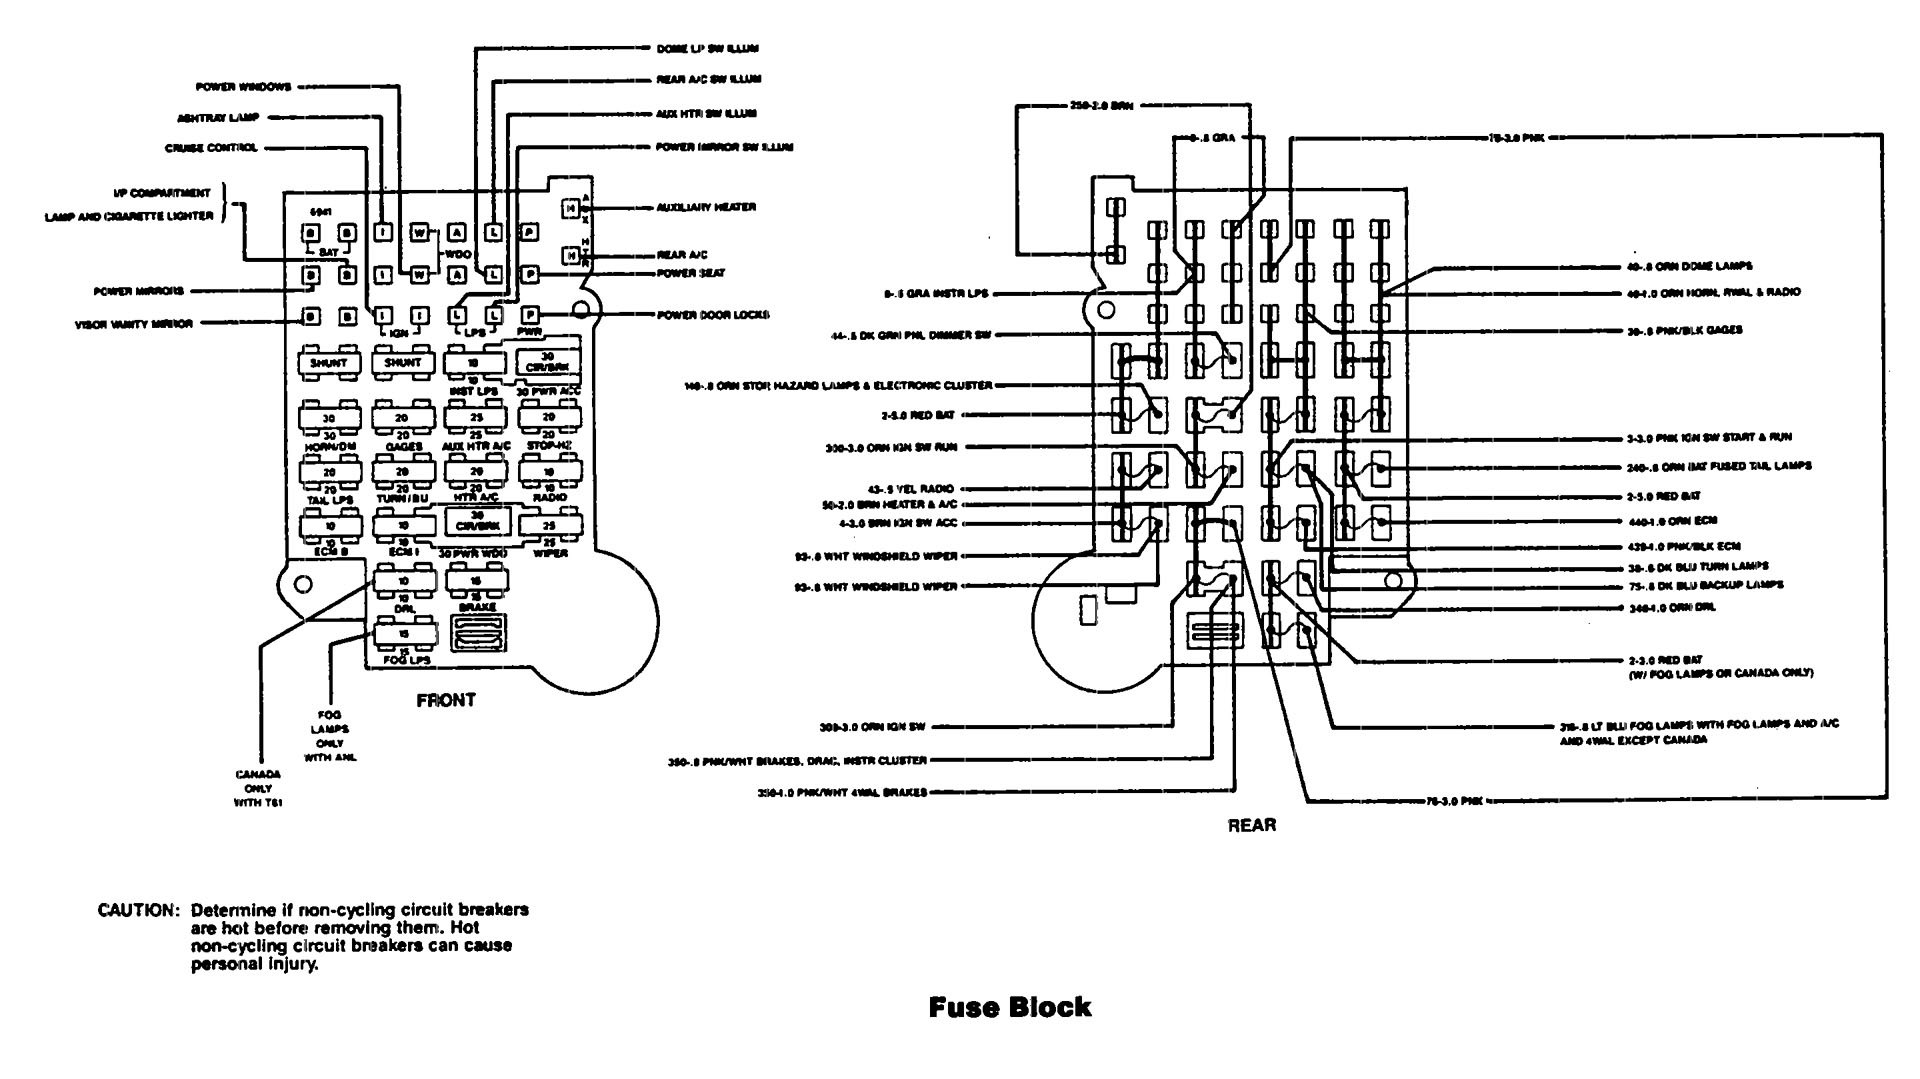 1990 Toyota Camry Fuse Box Diagram Wiring Automotive